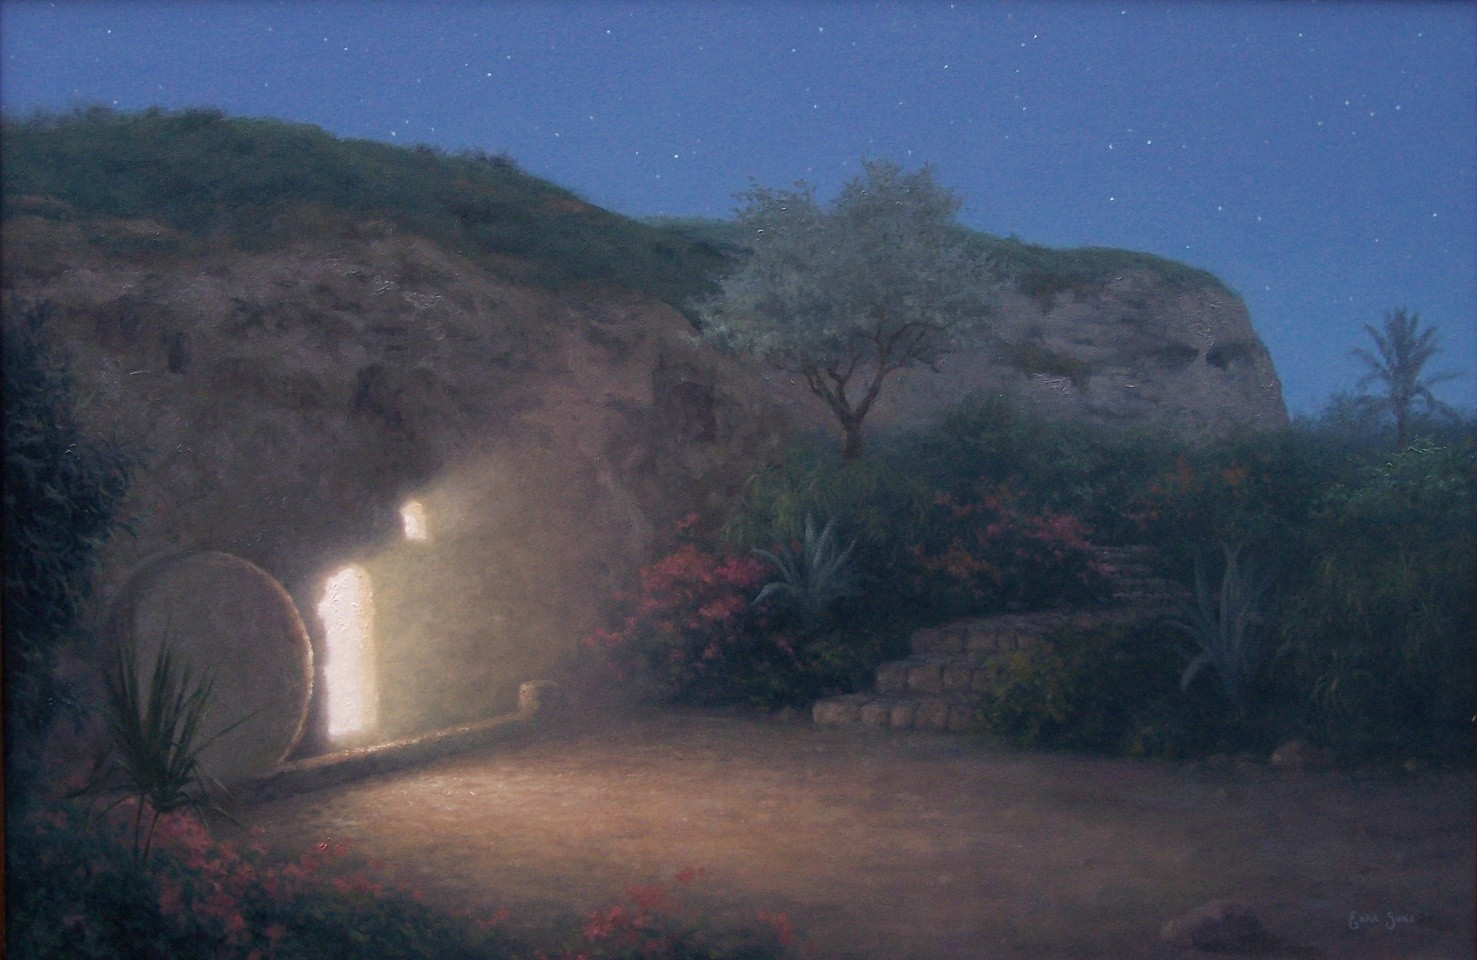 The empty tomb by Ezra Suko. It is my favorite painting of this place that I have been to two times.